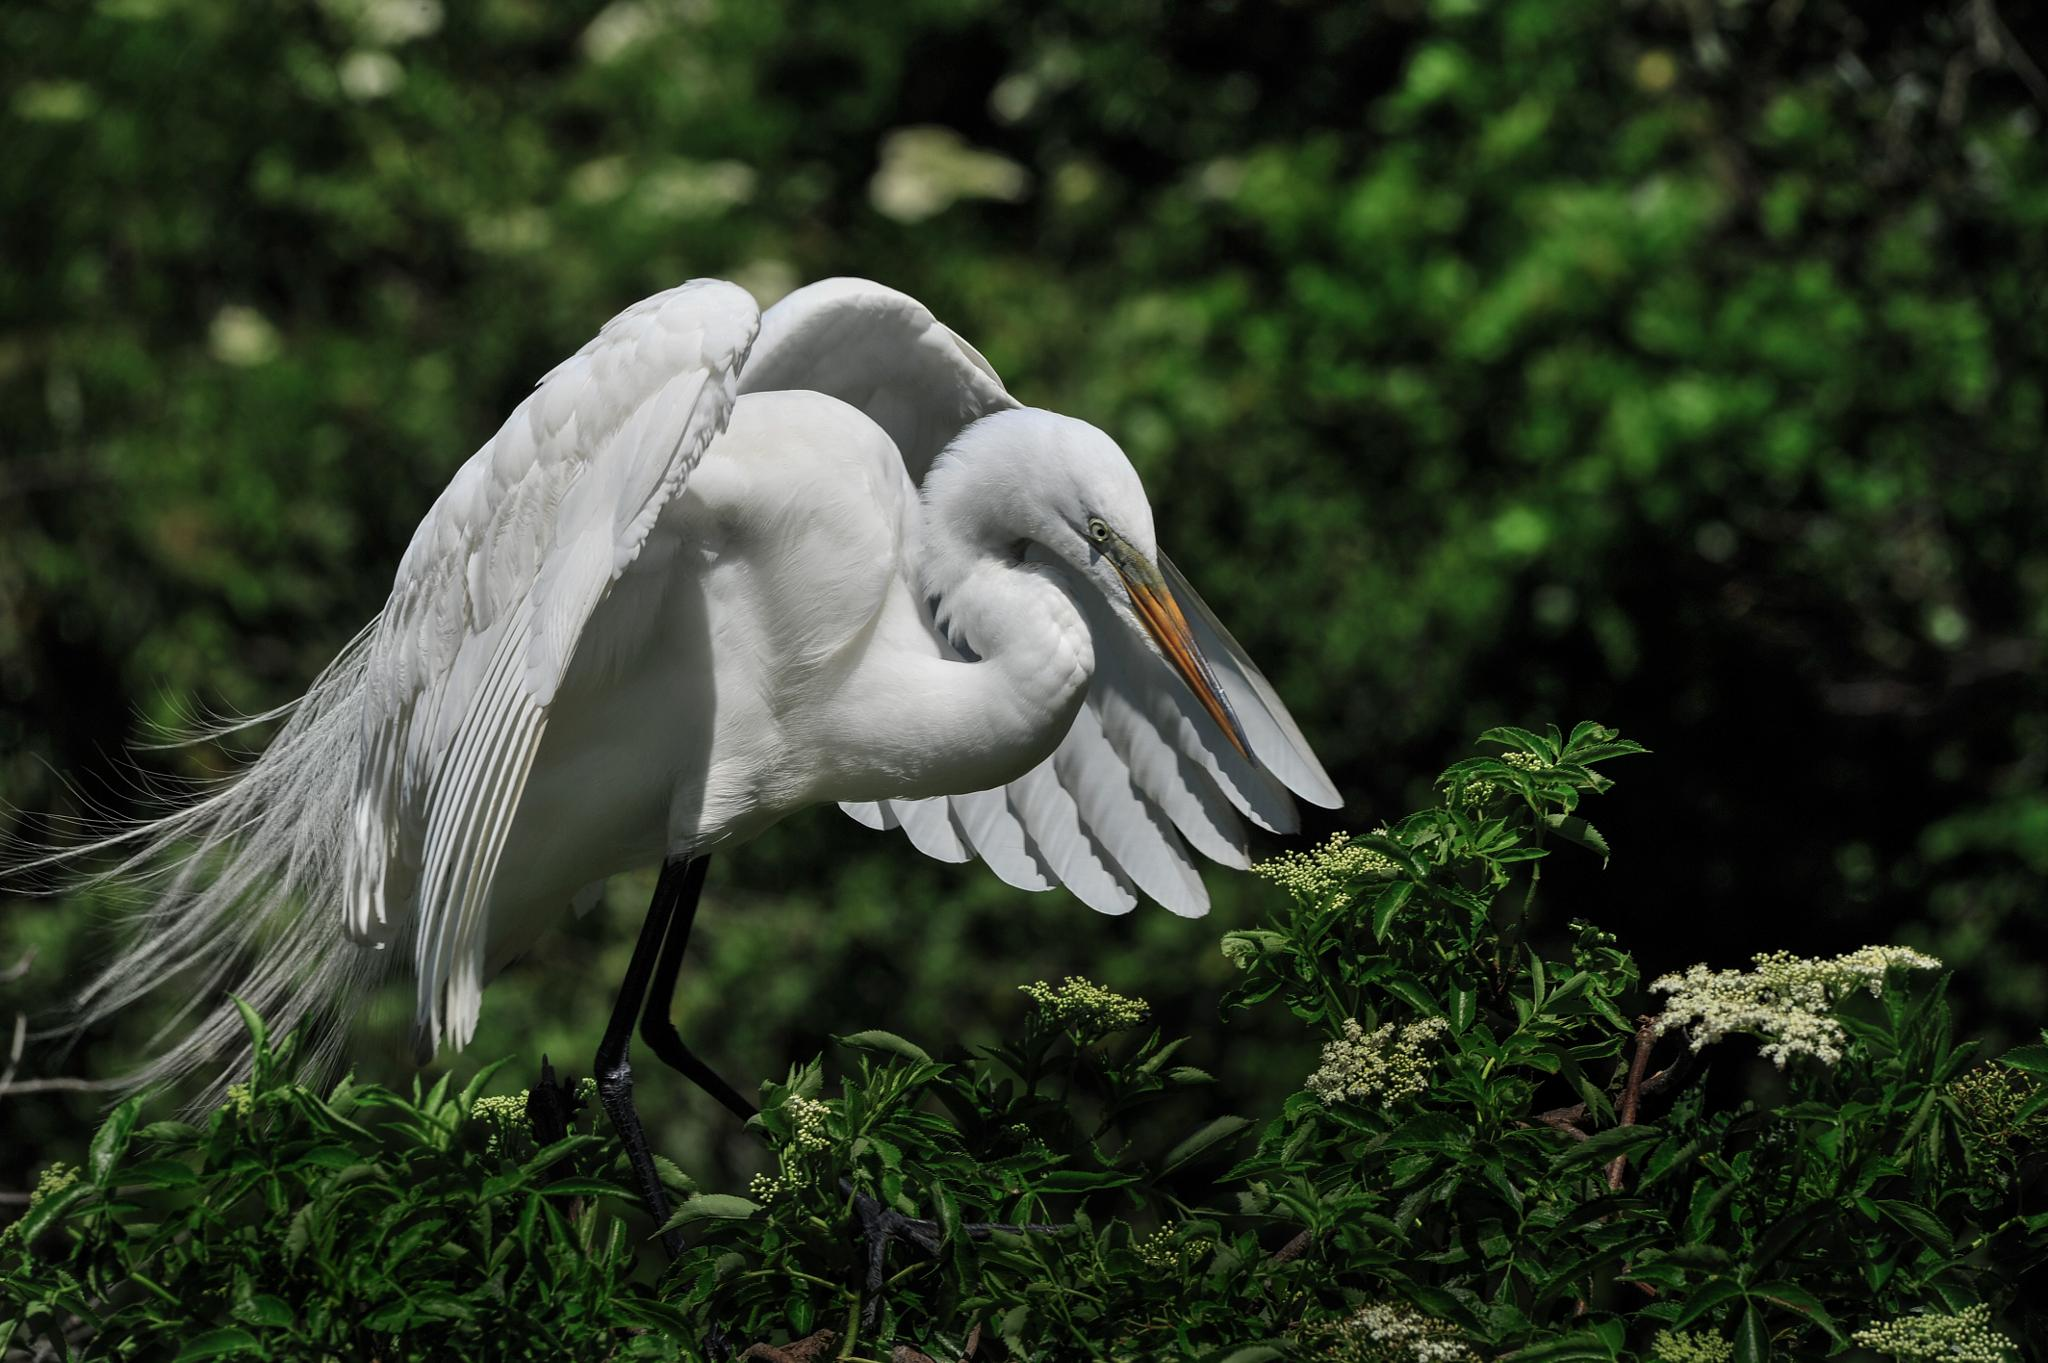 An egret settling in on the nest! by Cyril1